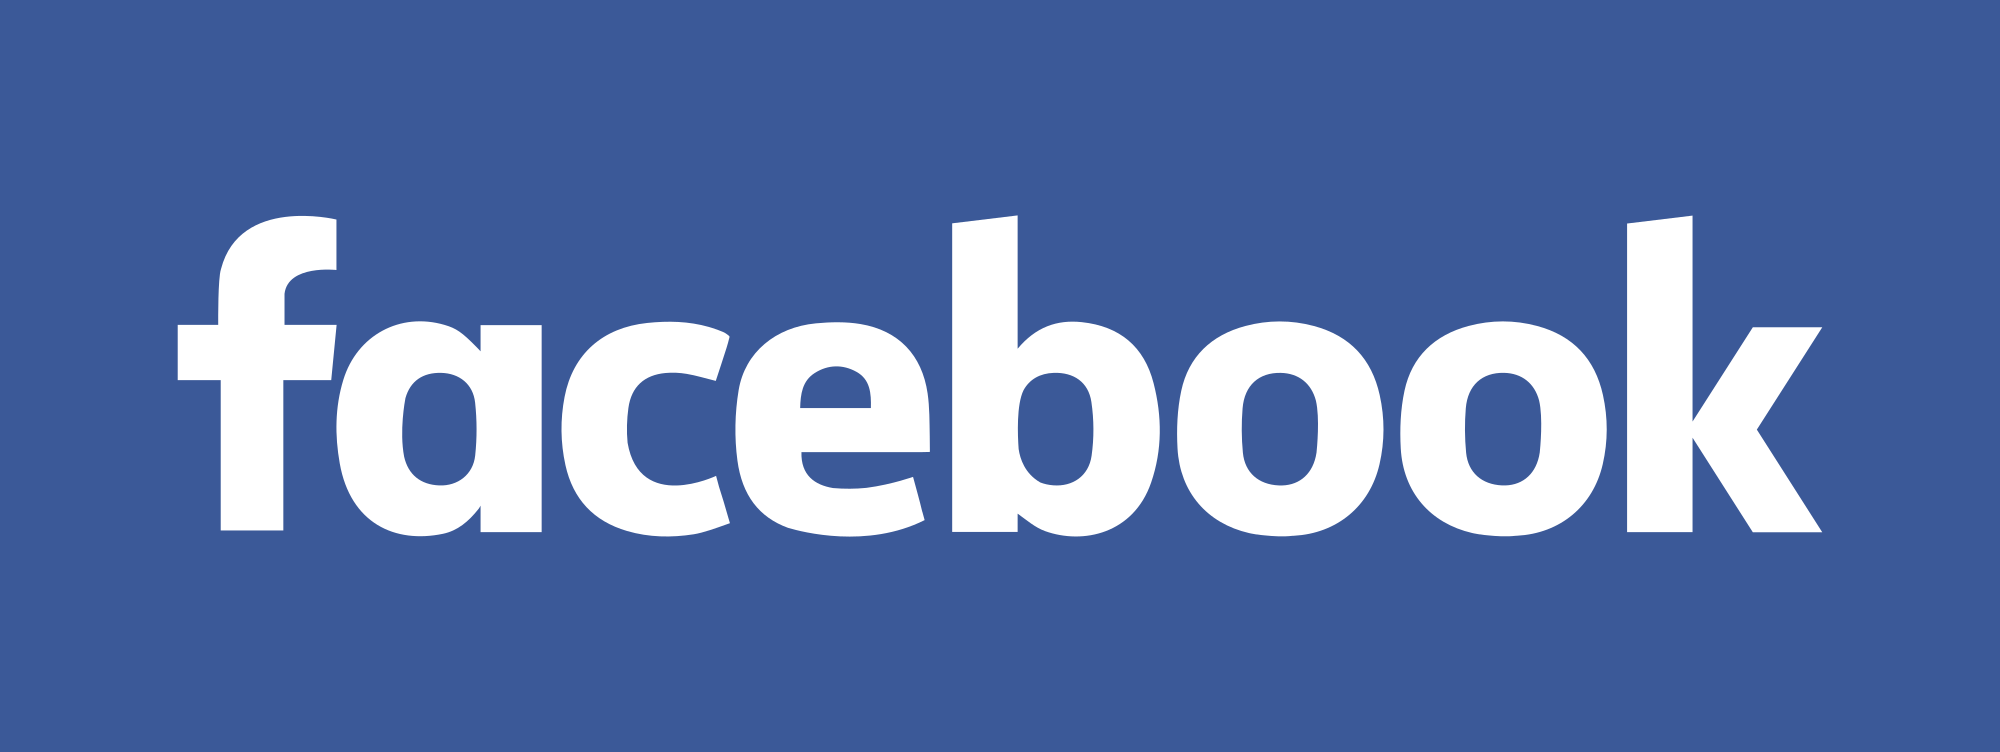 Facebook, Video, Videoplayer, Musik, Music, Streaming, Stream, Social Media